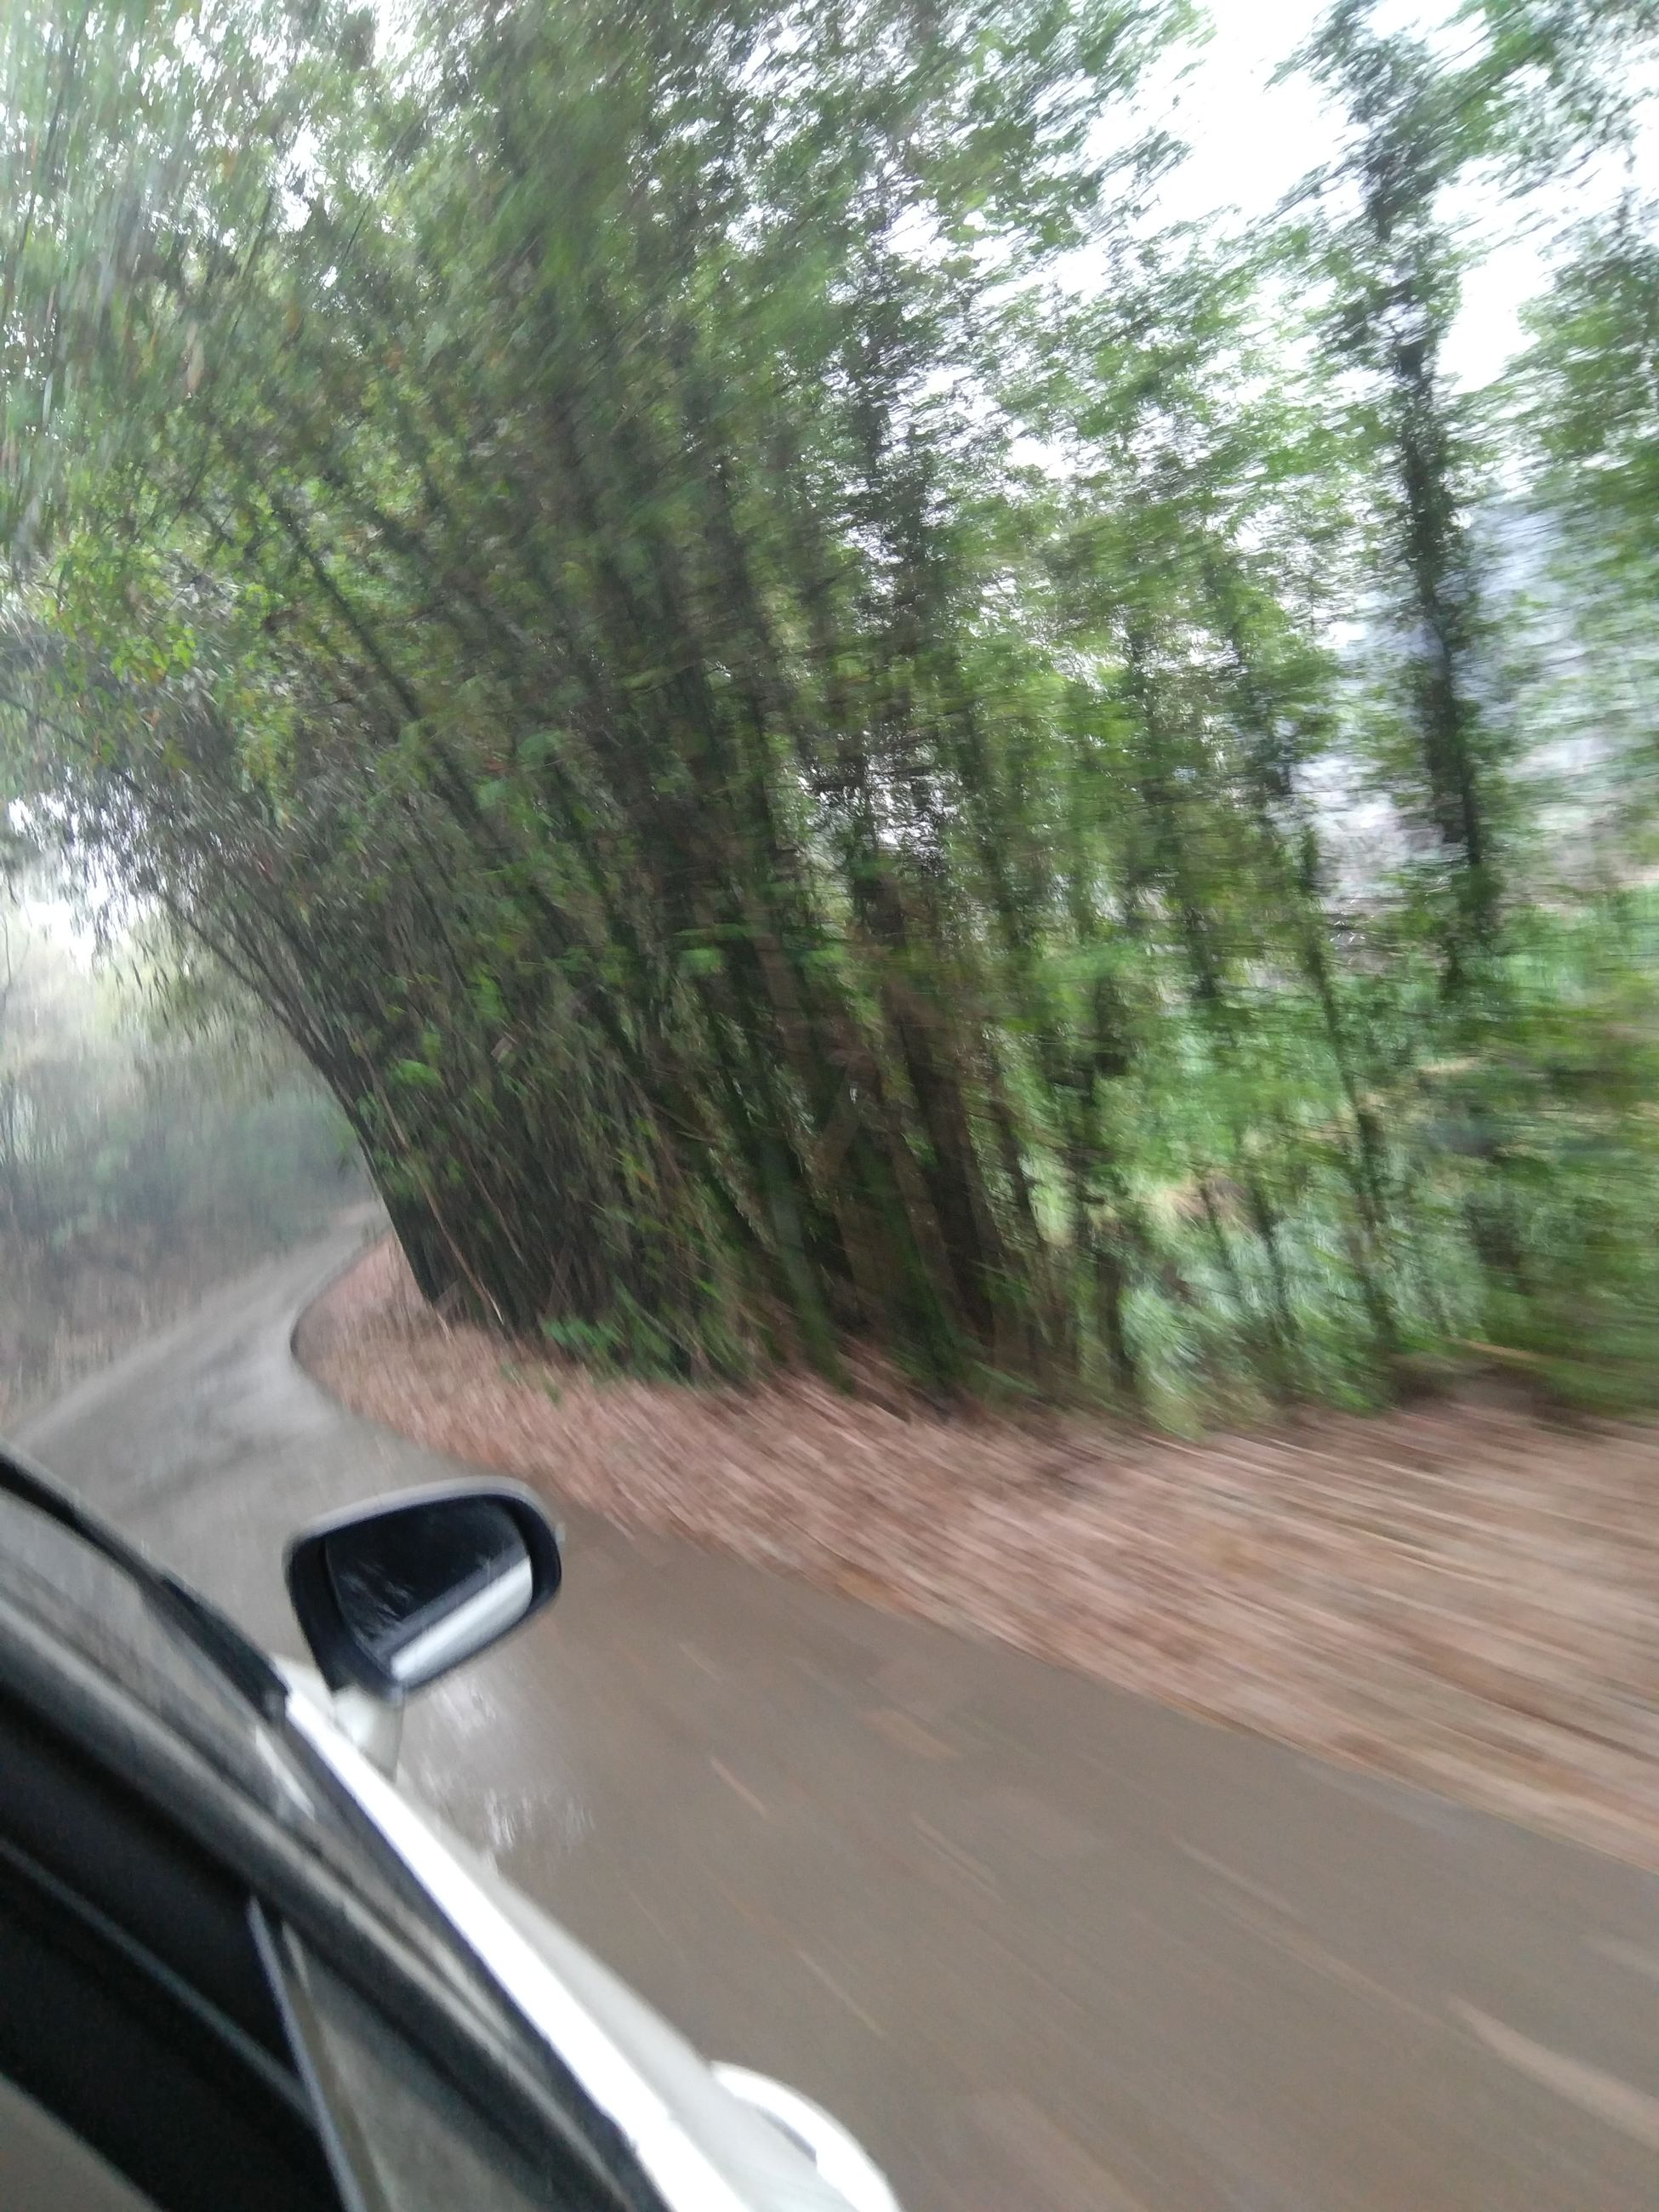 transportation, land vehicle, road, car, mode of transport, tree, day, blurred motion, no people, car point of view, windshield, window, motion, journey, car interior, nature, road trip, outdoors, close-up